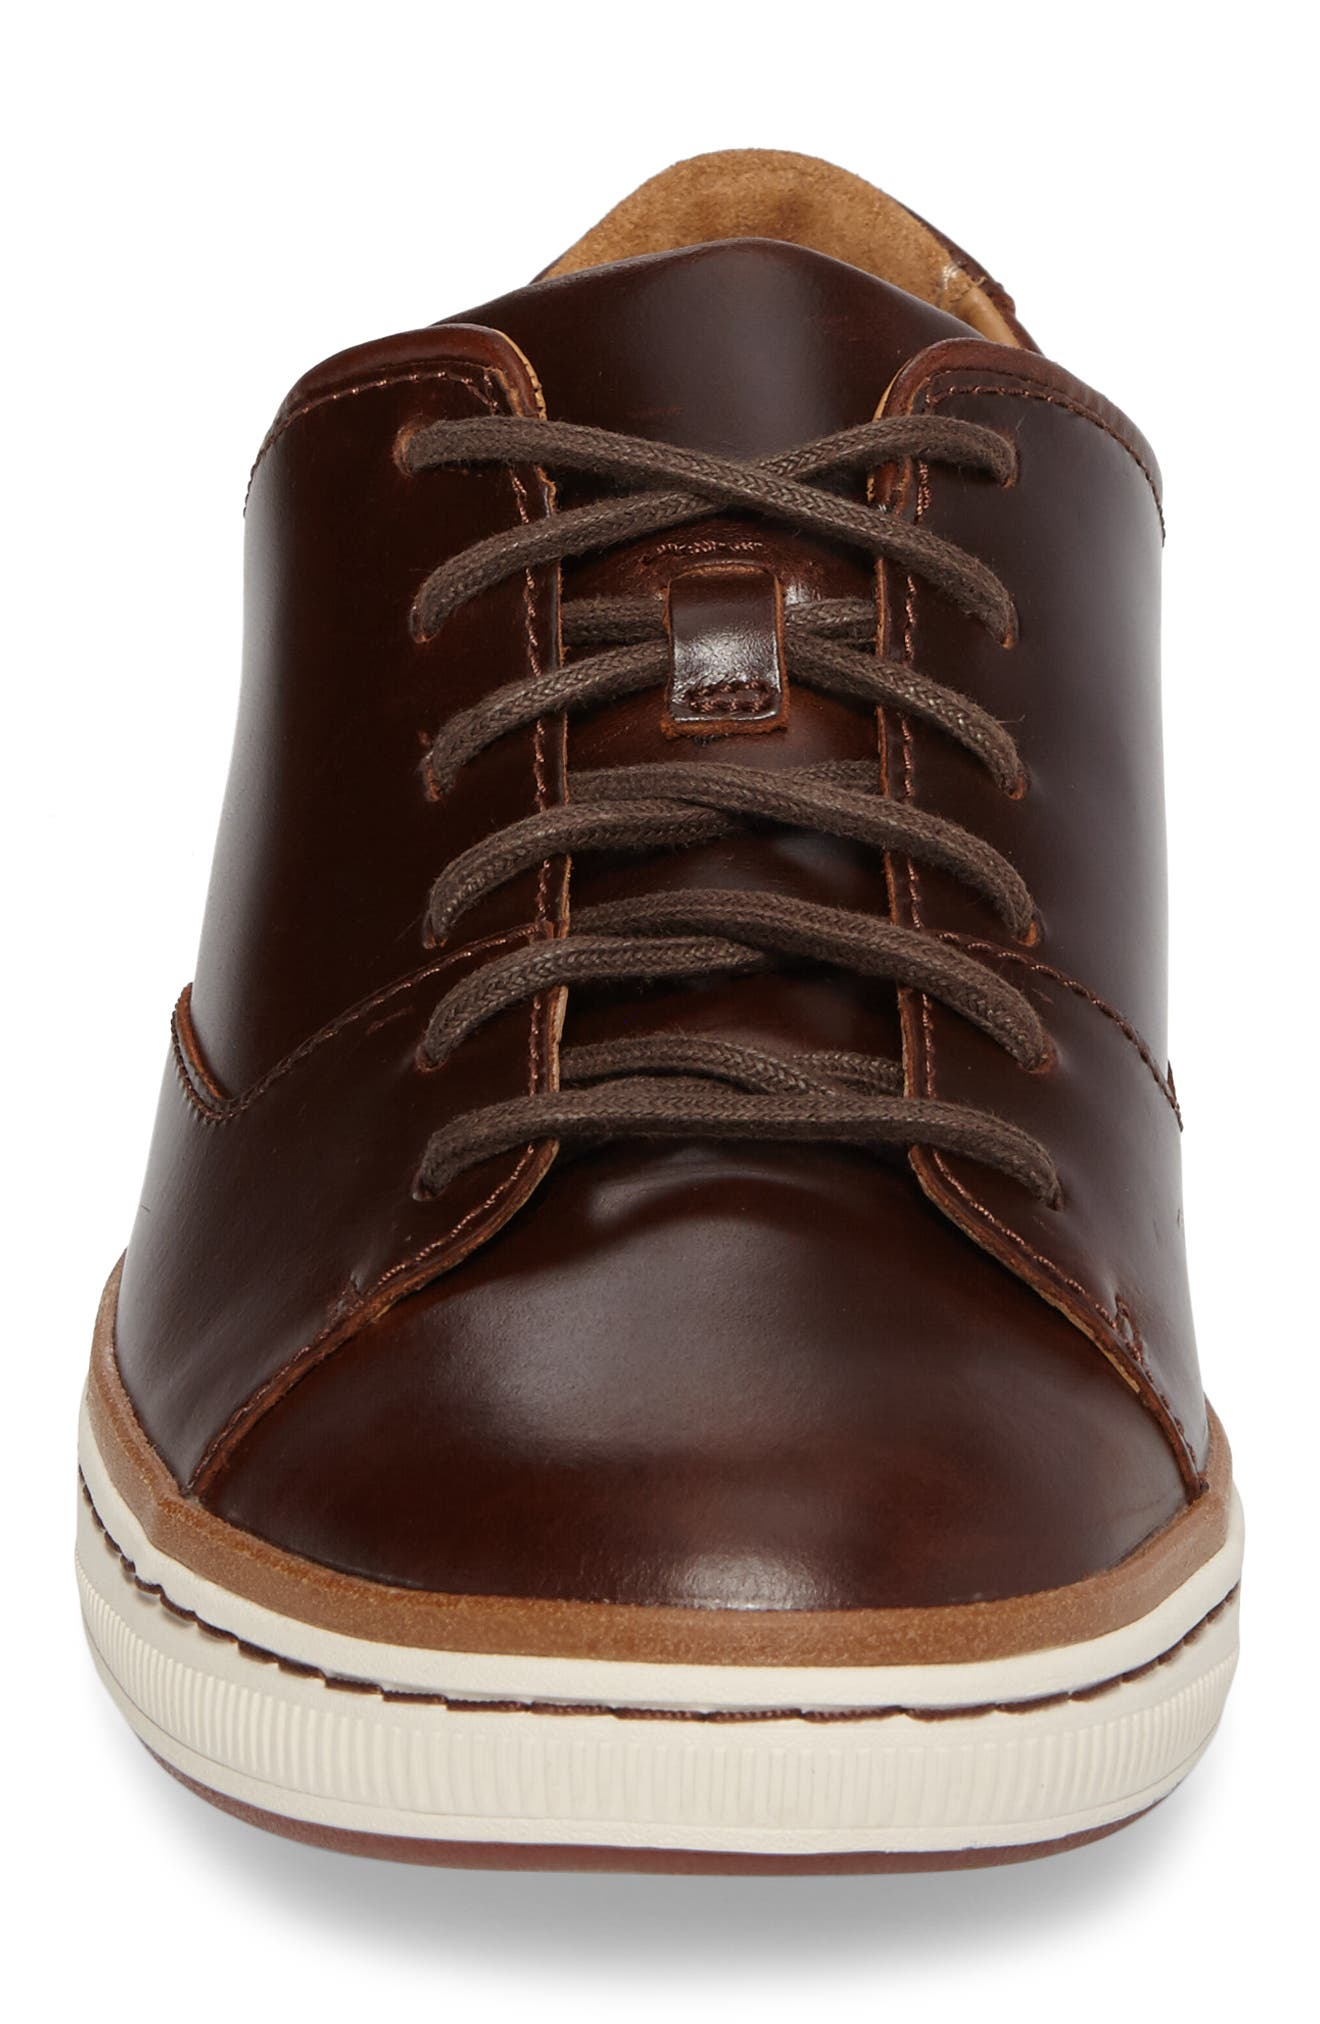 CLARKS<SUP>®</SUP>, Norsen Lace Sneaker, Alternate thumbnail 4, color, DARK TAN LEATHER